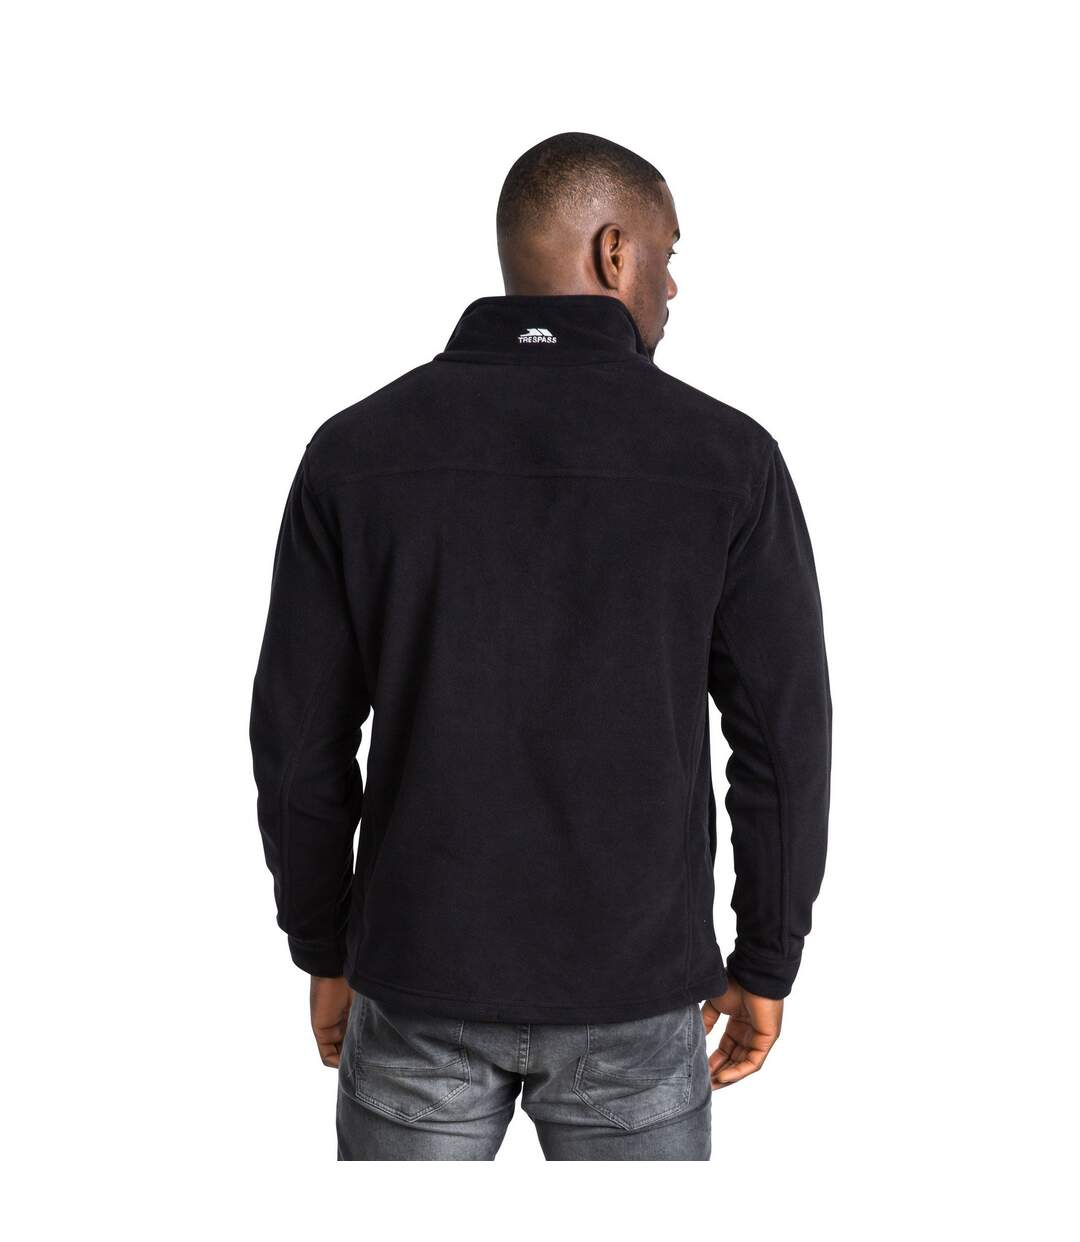 Trespass Mens Bernal Full Zip Fleece Jacket (Black) - UTTP254